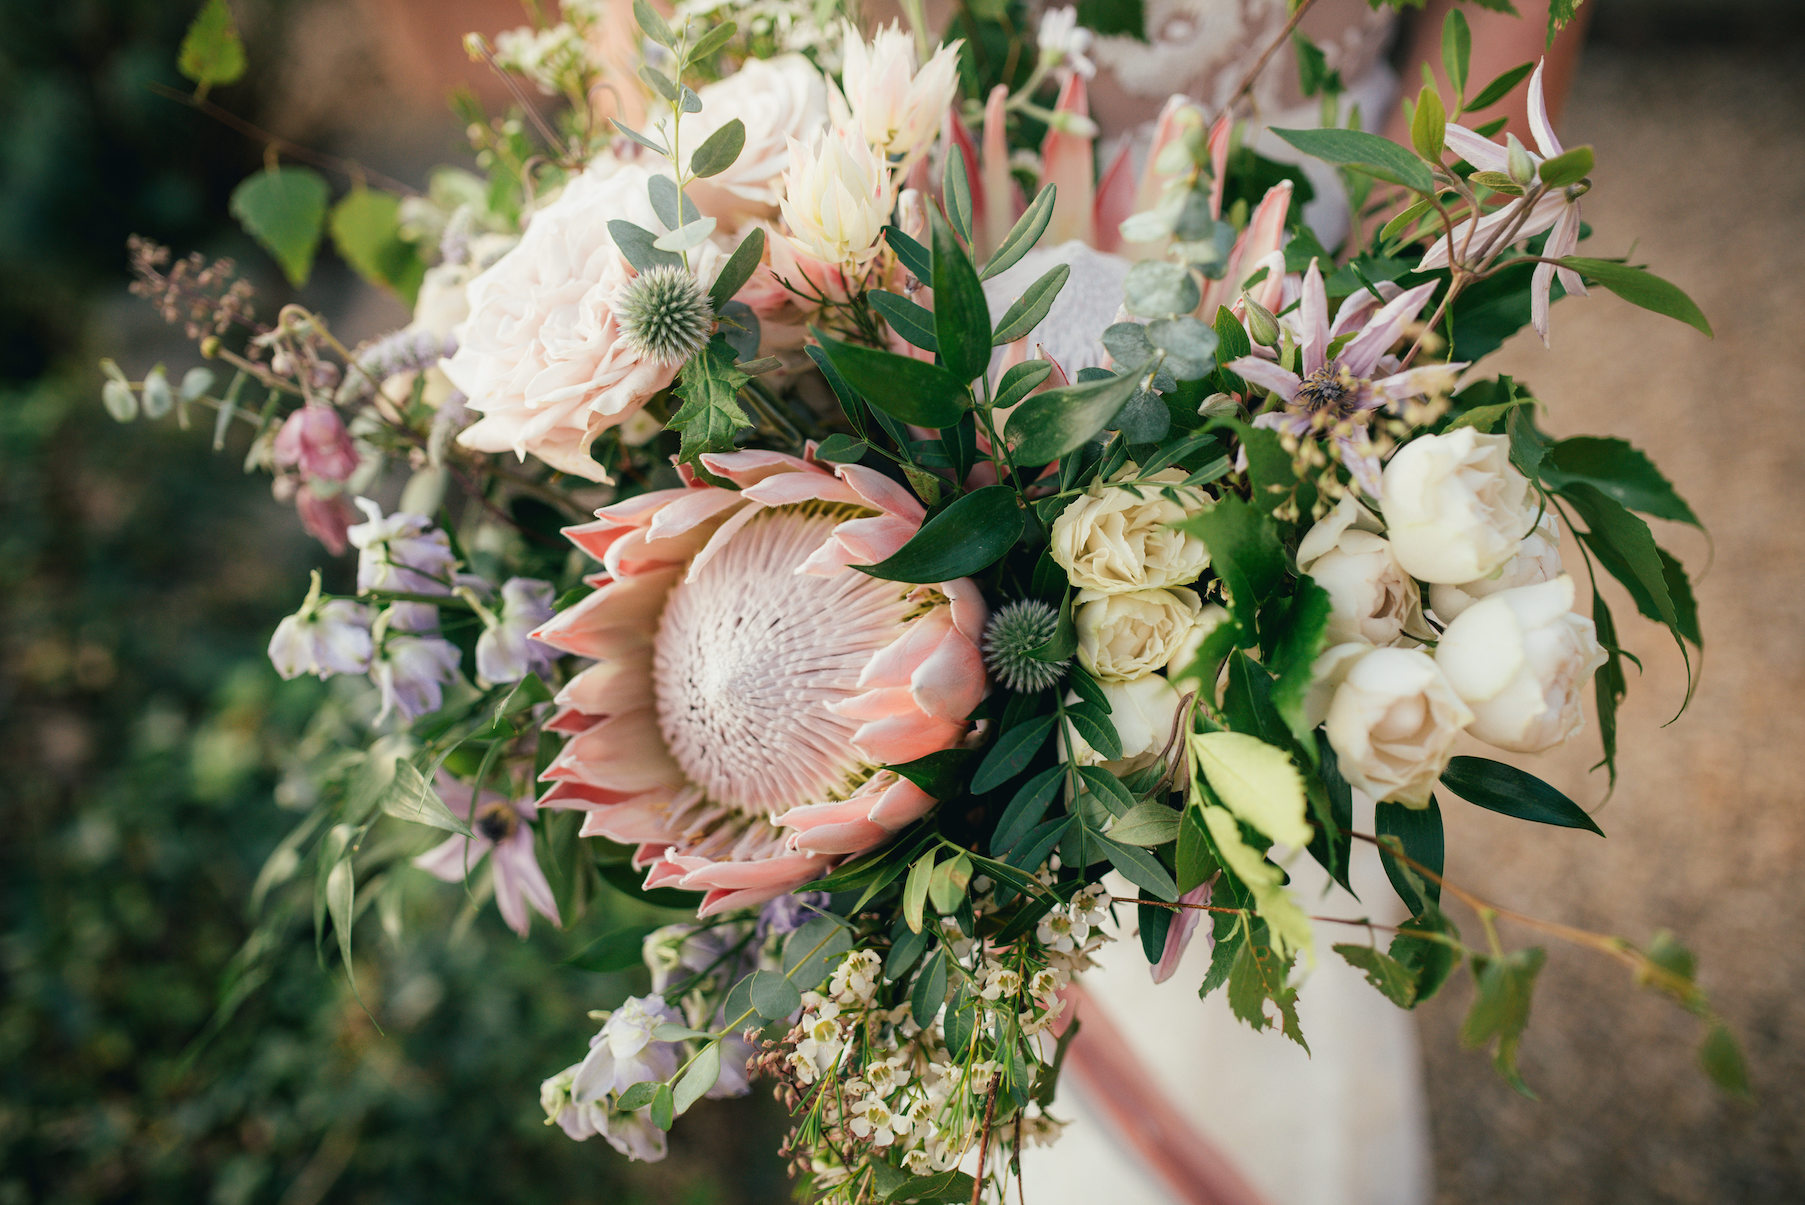 Protea and faded pastels wedding bouquet for Ella and Tom by The Flower Story.